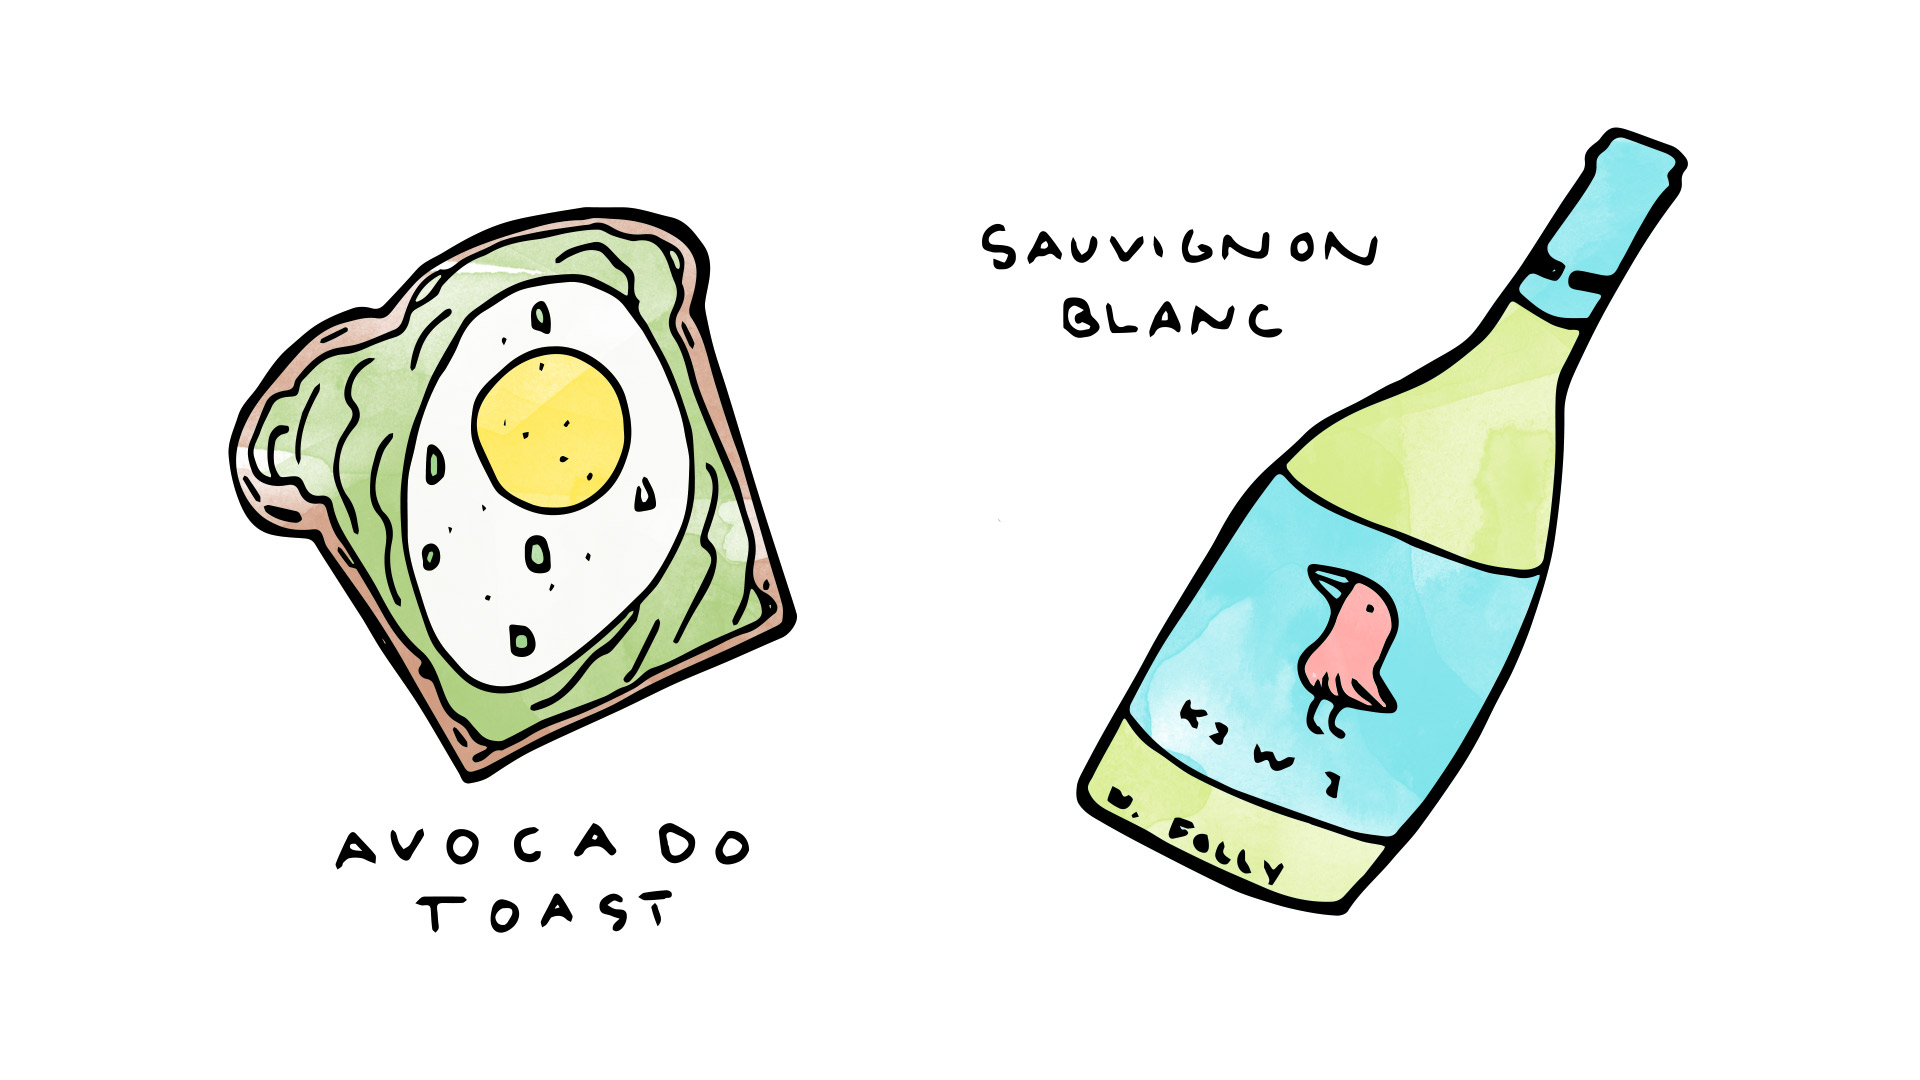 Avocado Toast wine pairing with Sauvignon Blanc illustration by Wine Folly